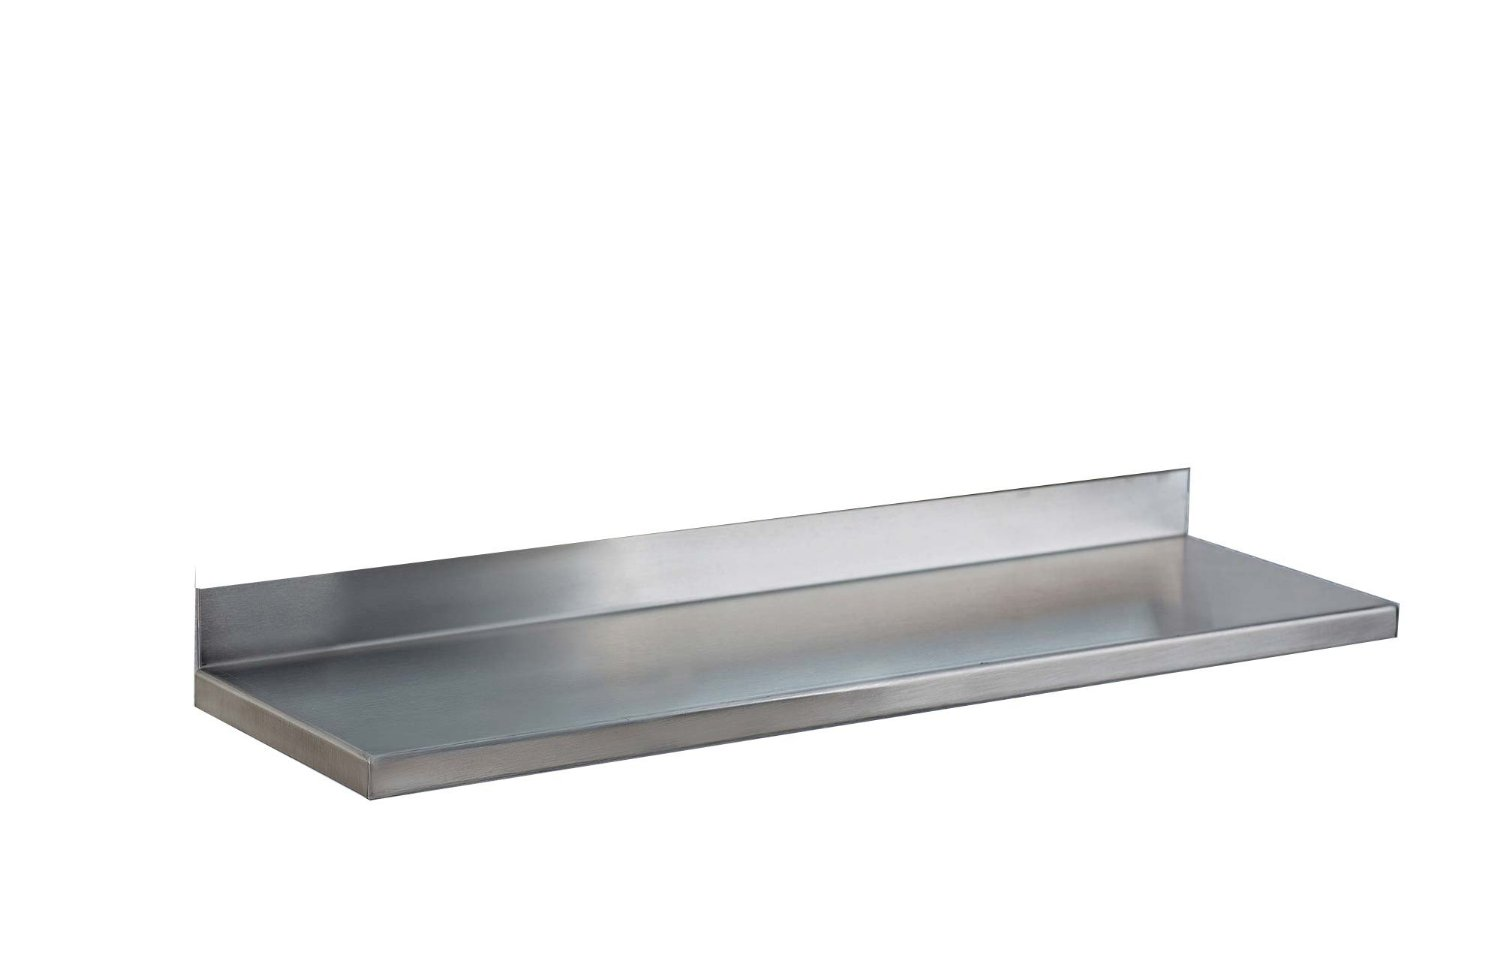 72-inch x 6-inch, Integral shelf, satin finish